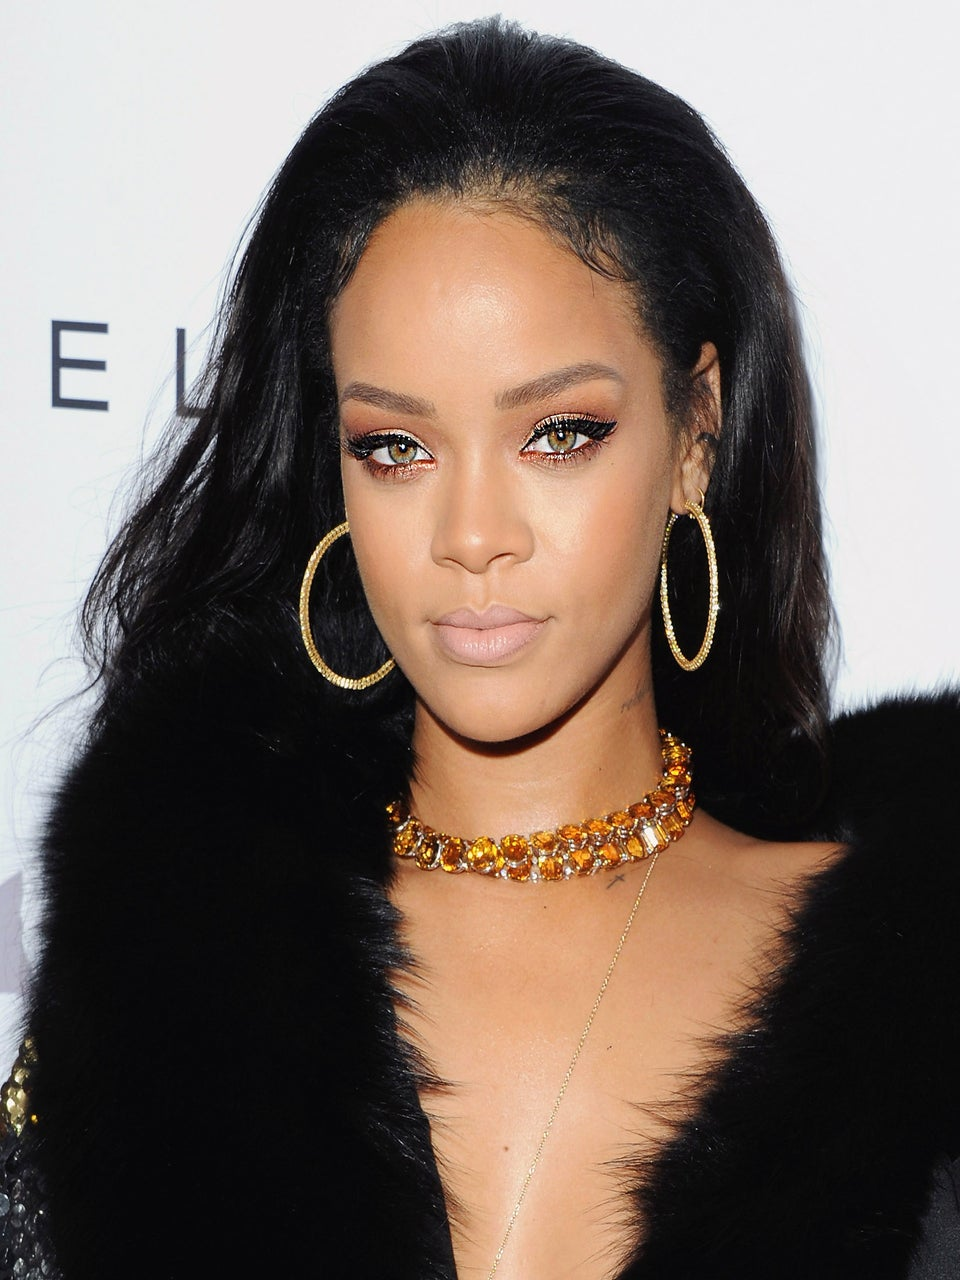 Rihanna's Former Publicist Apologizes for Fabricating Jay Z Cheating Rumors